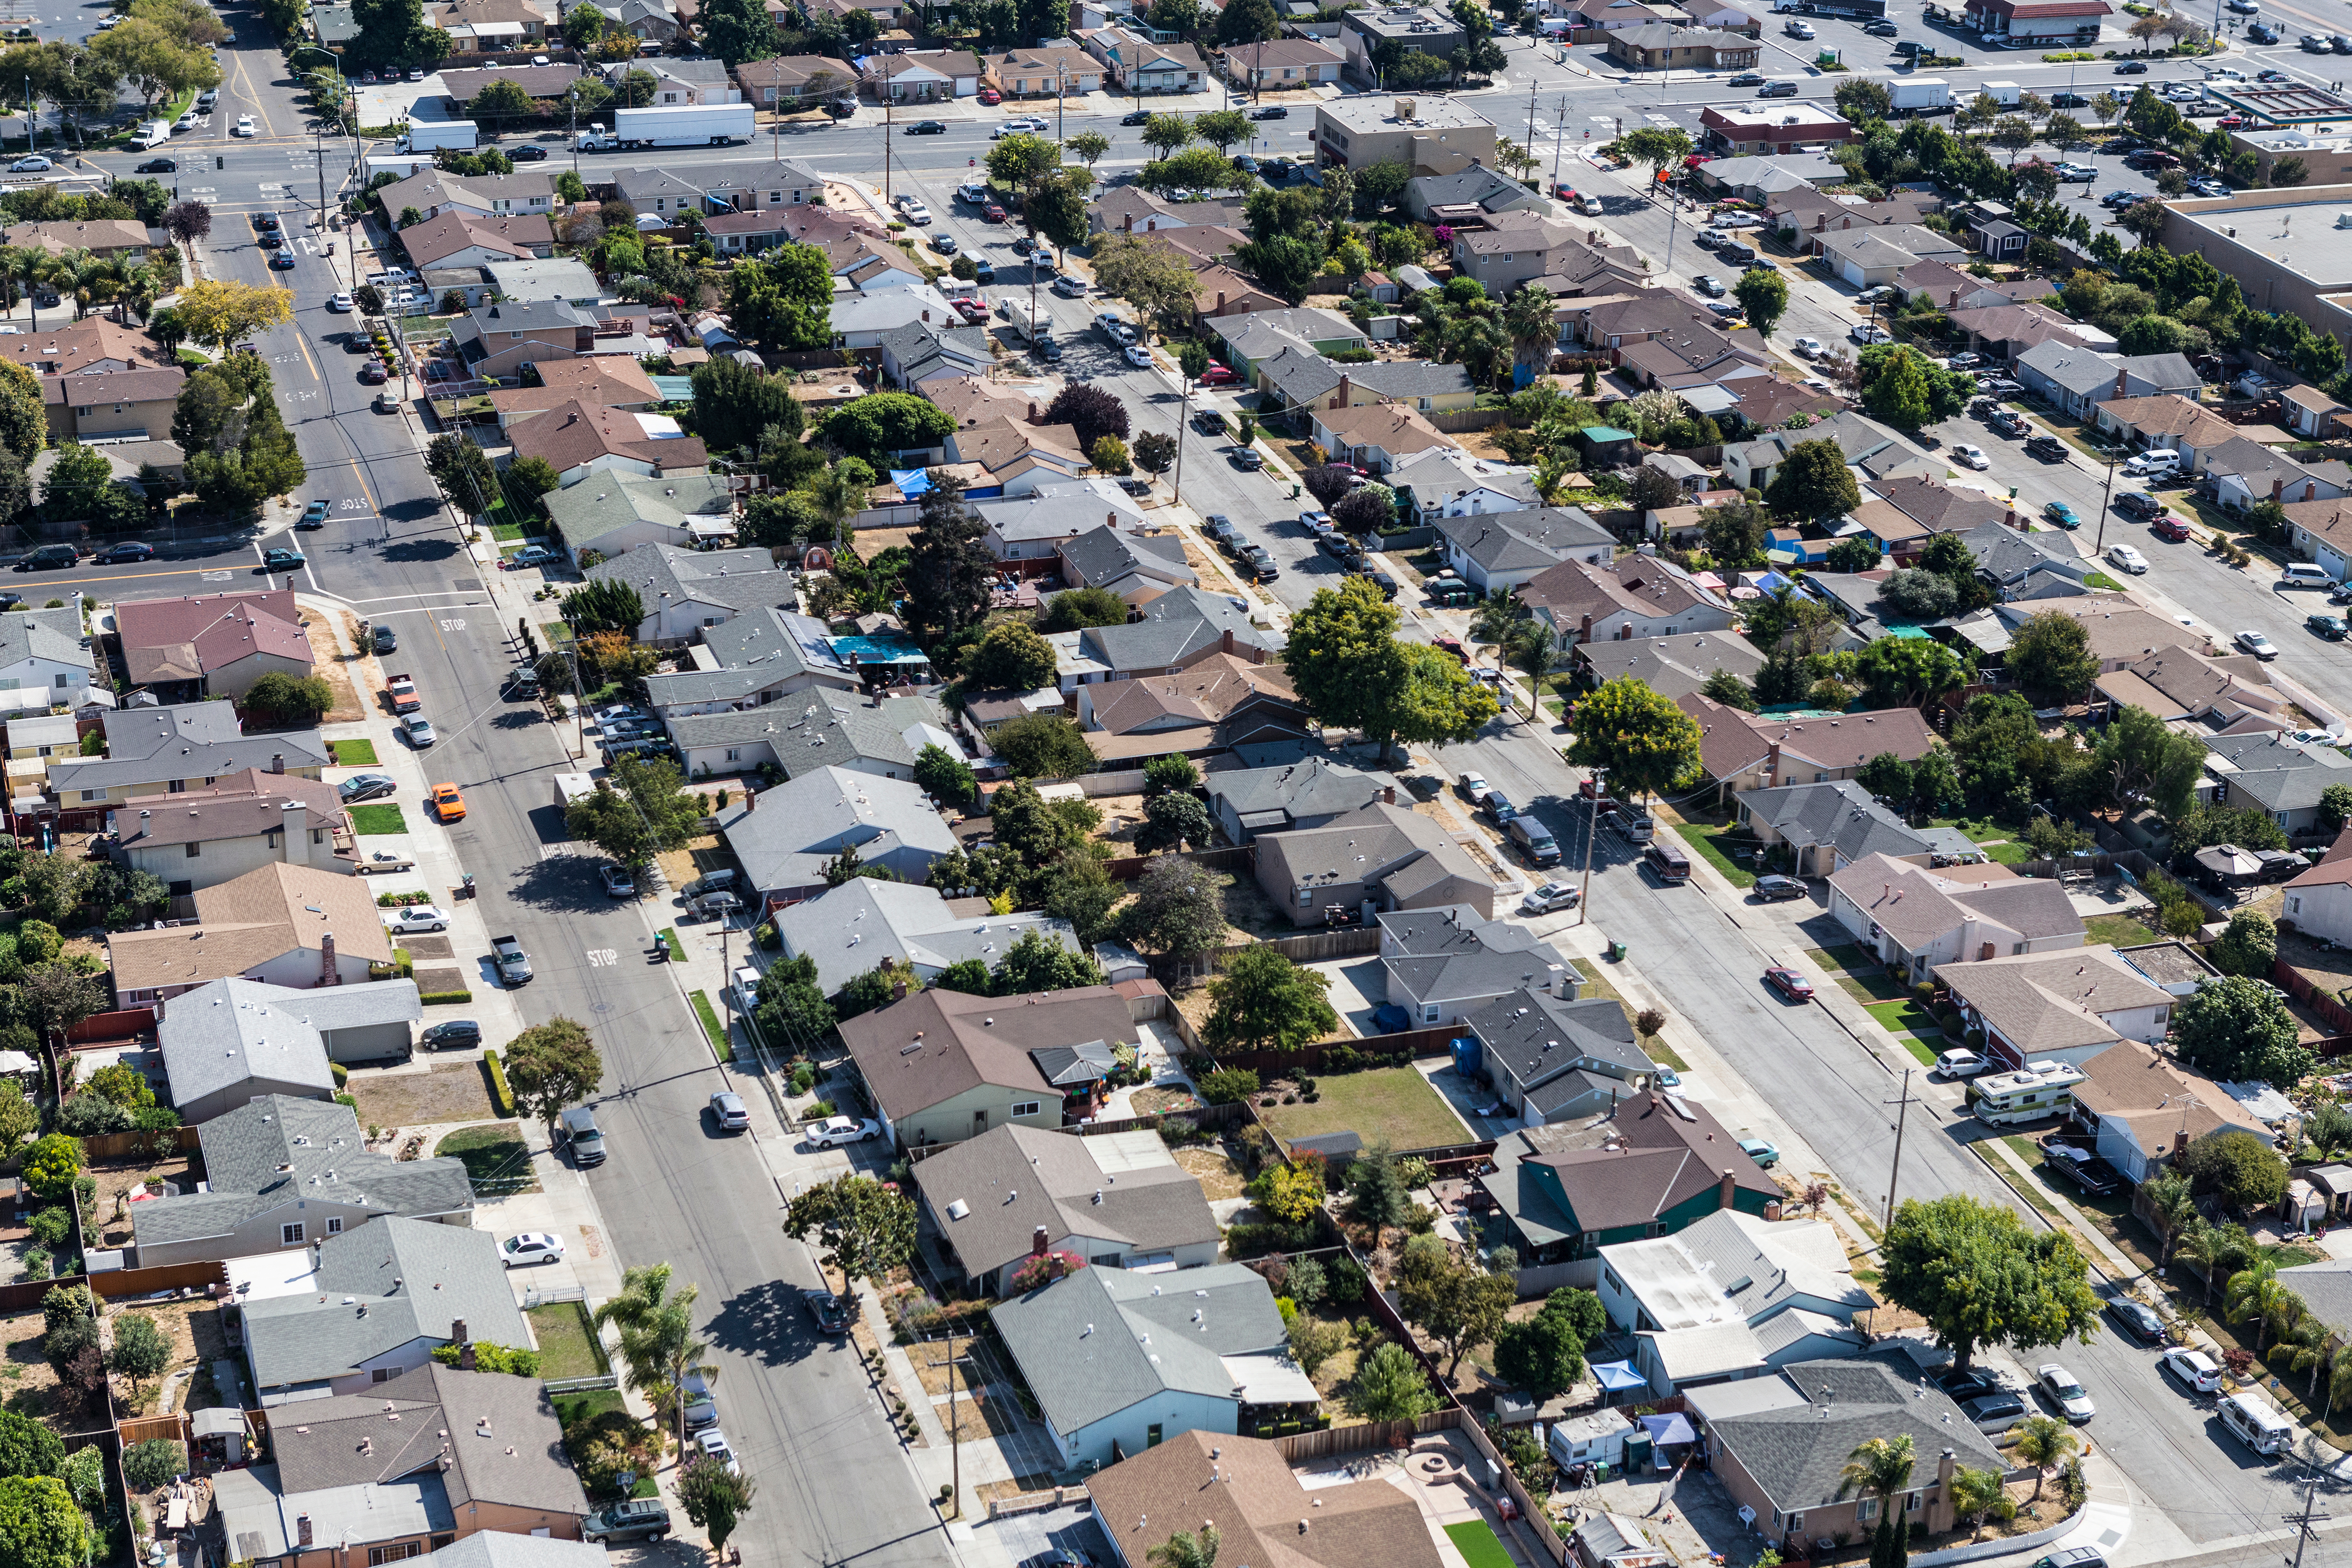 An overhead view of a neighborhood filled with single-family homes.